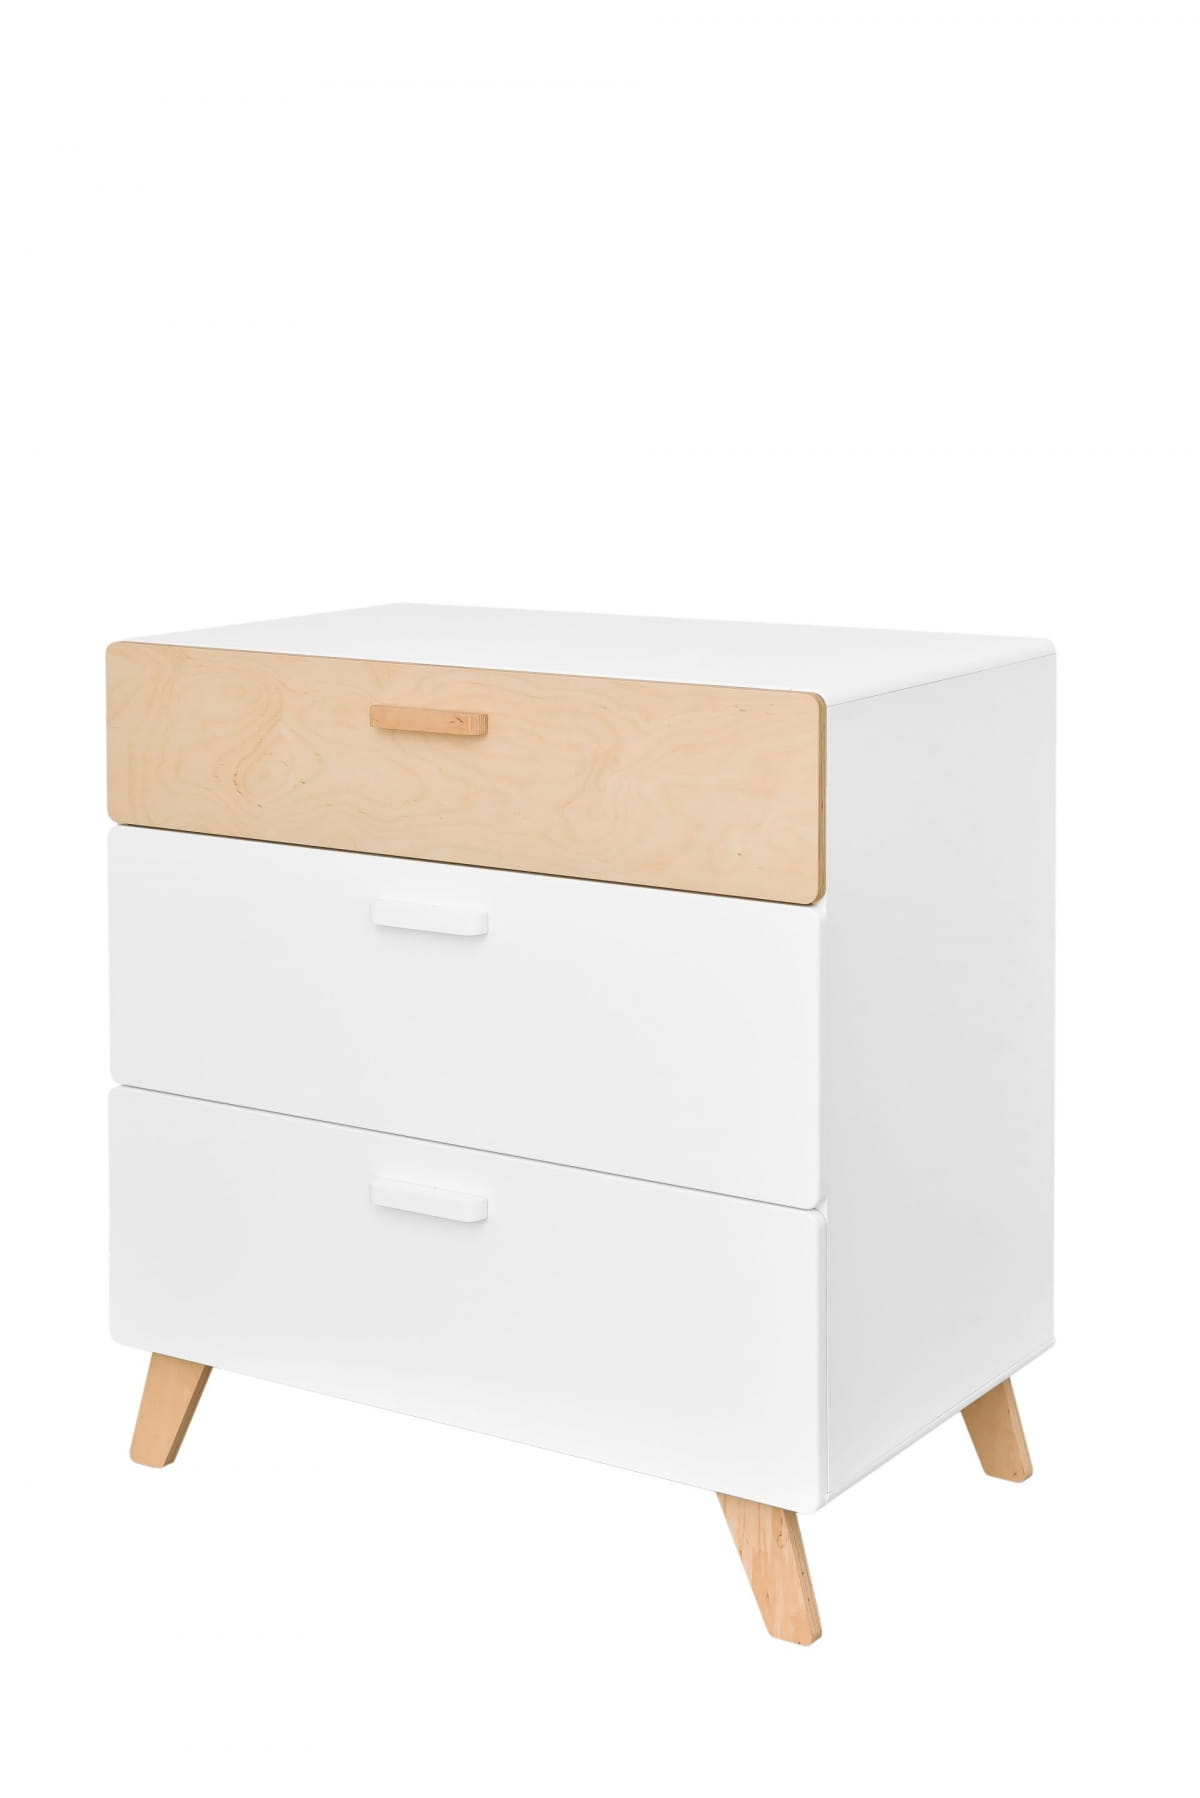 Hoppa_chest_of_drawers_02.jpg